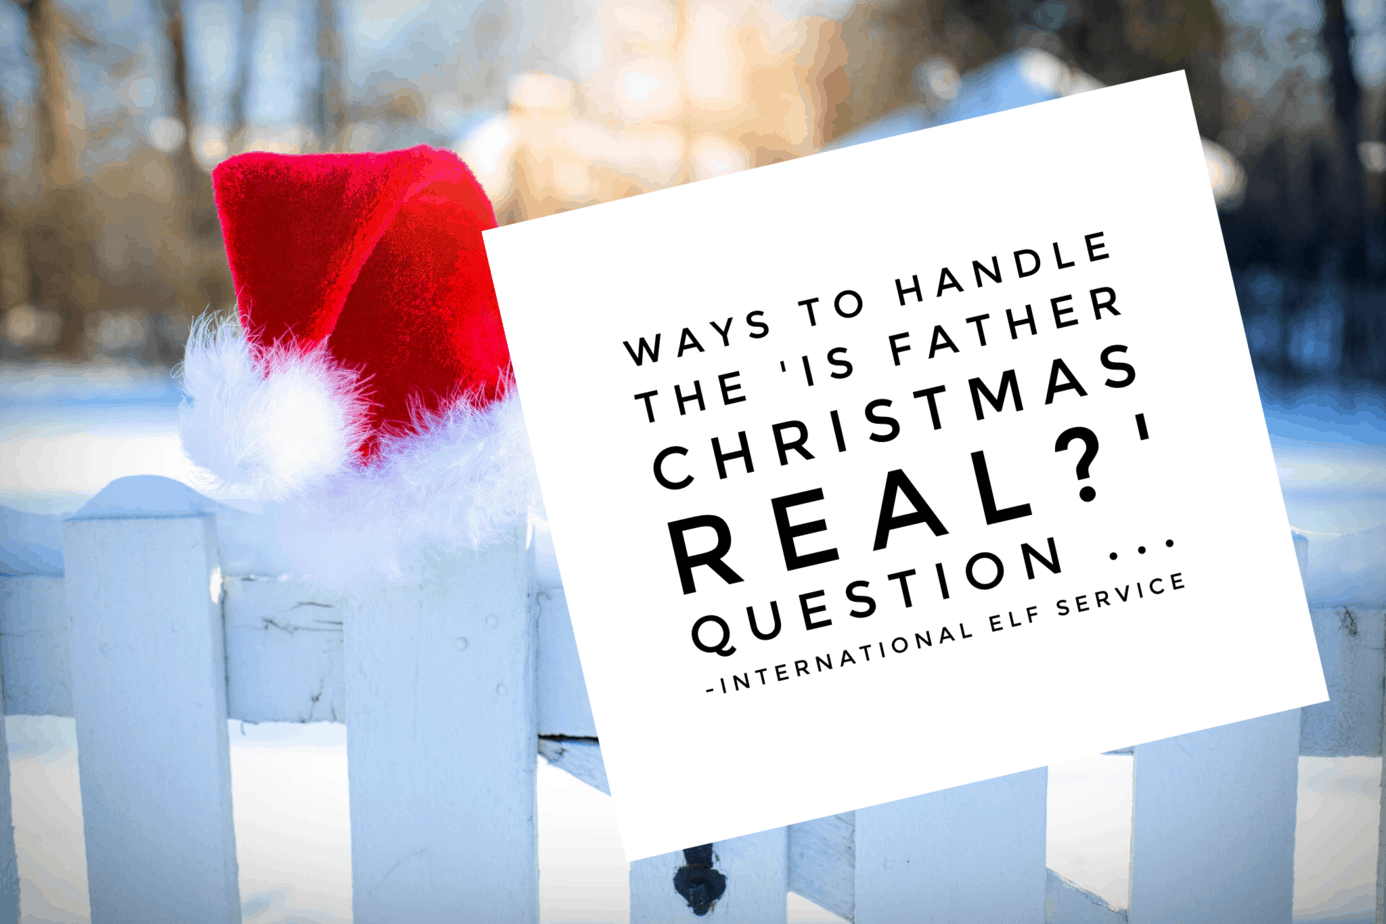 Lots of lovely ways to handle the 'Is Father Christmas Real?' question - International Elf Service